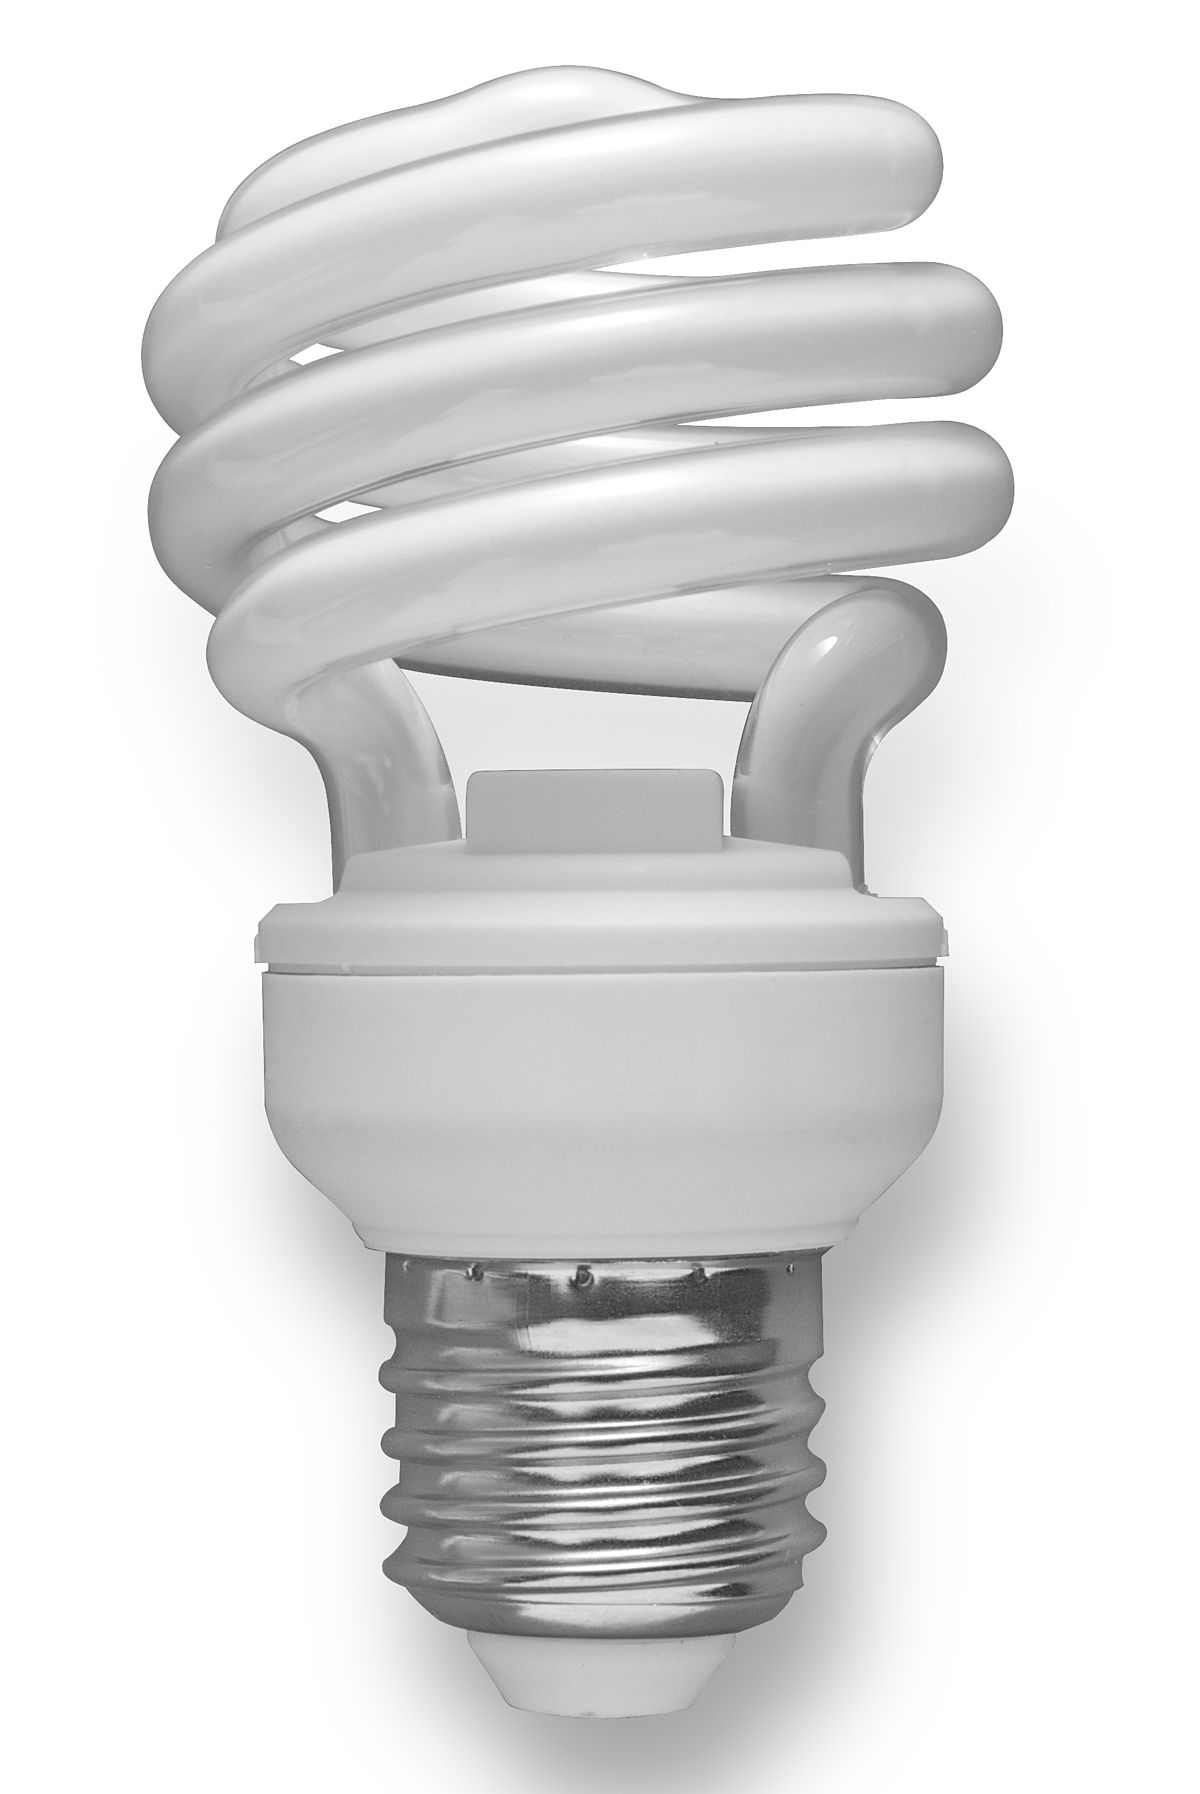 06 Spiral CFL Bulb 2010-03-08 (white back).jpg